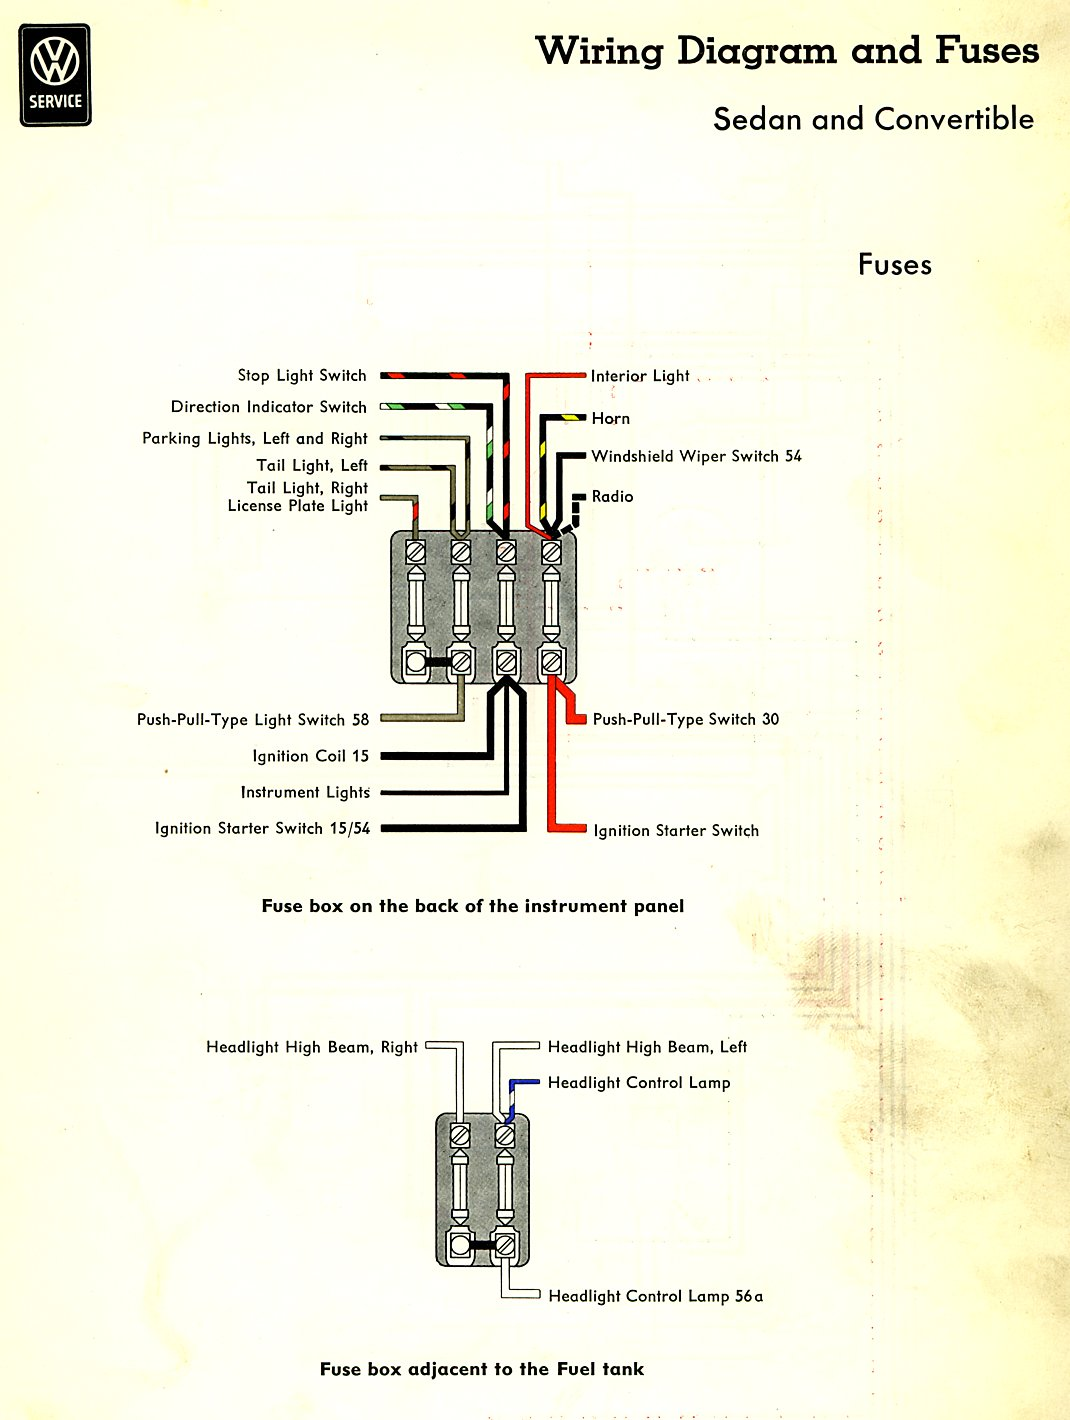 thesamba com type 1 wiring diagrams rh thesamba com  1966 vw beetle fuse box diagram